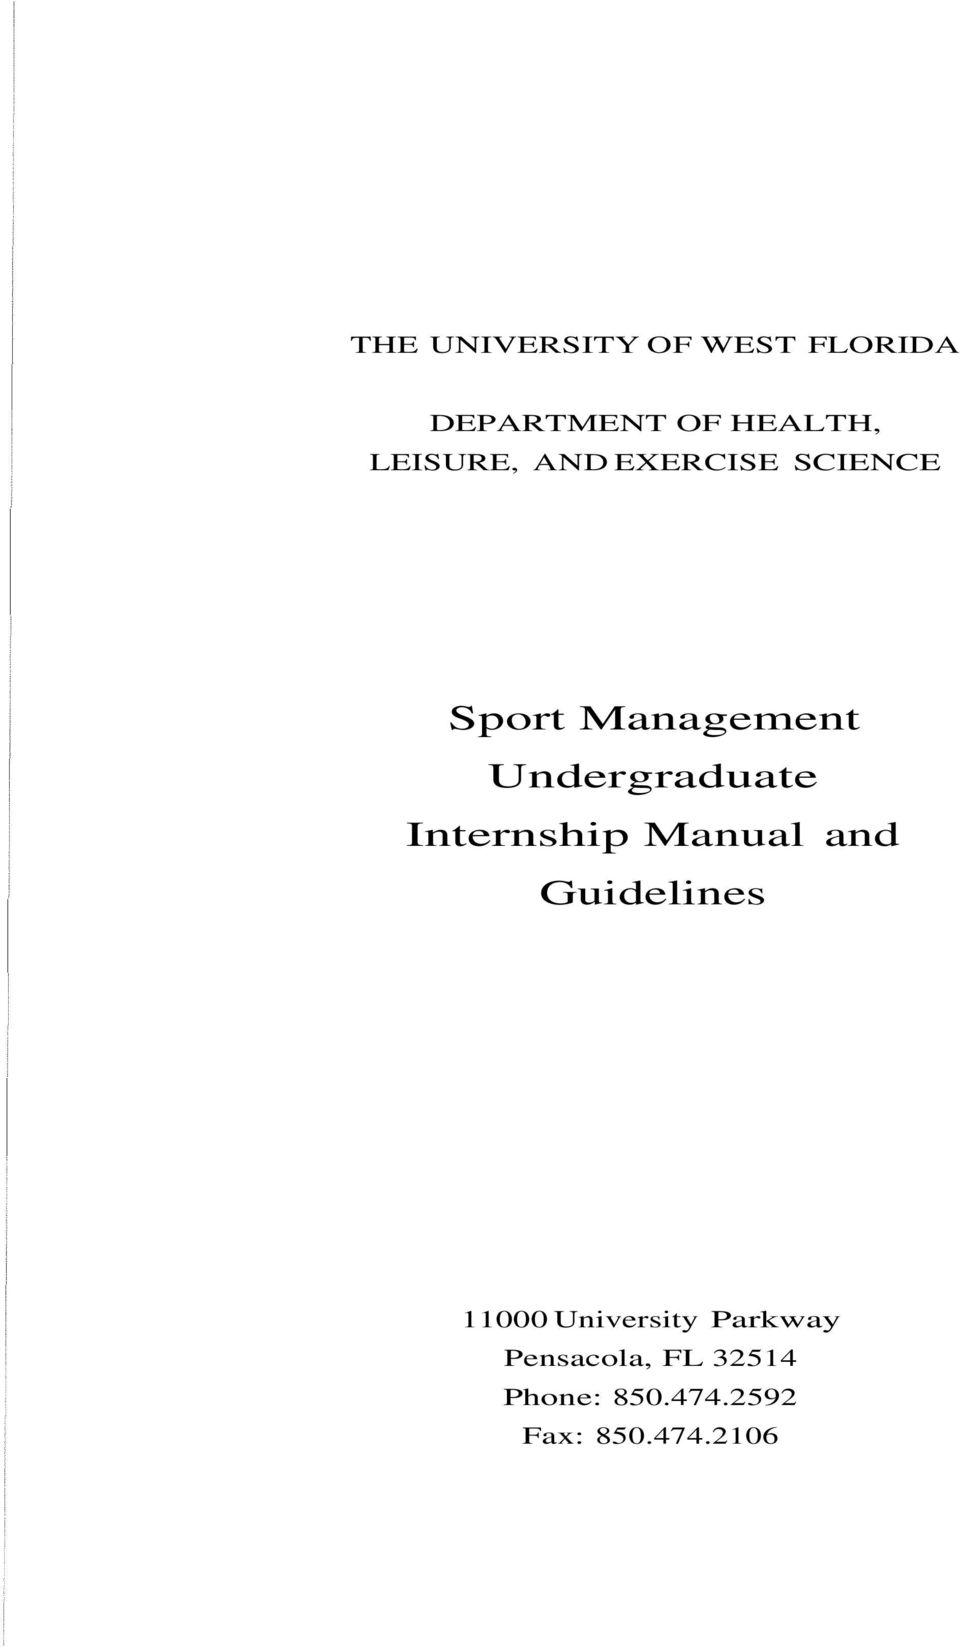 Undergraduate Internship Manual and Guidelines 11000